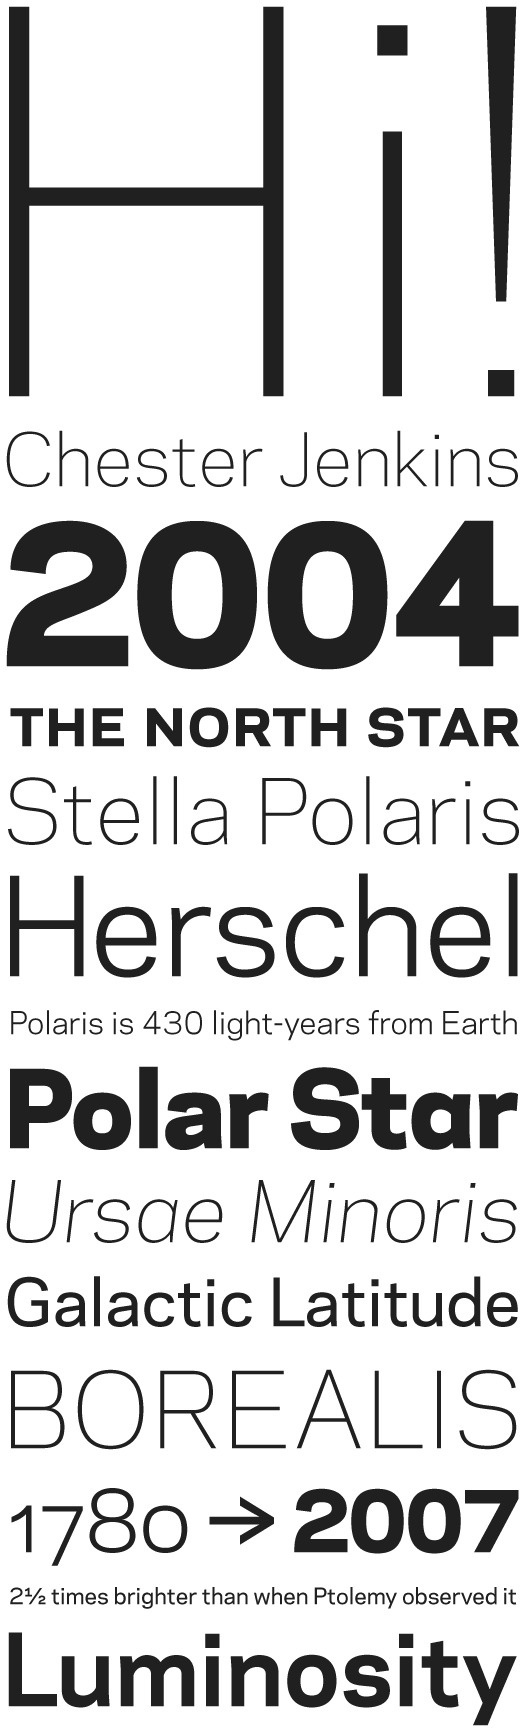 Galaxie Polaris by Chester Jenkins #font #constellation #serif #sans #type #typography